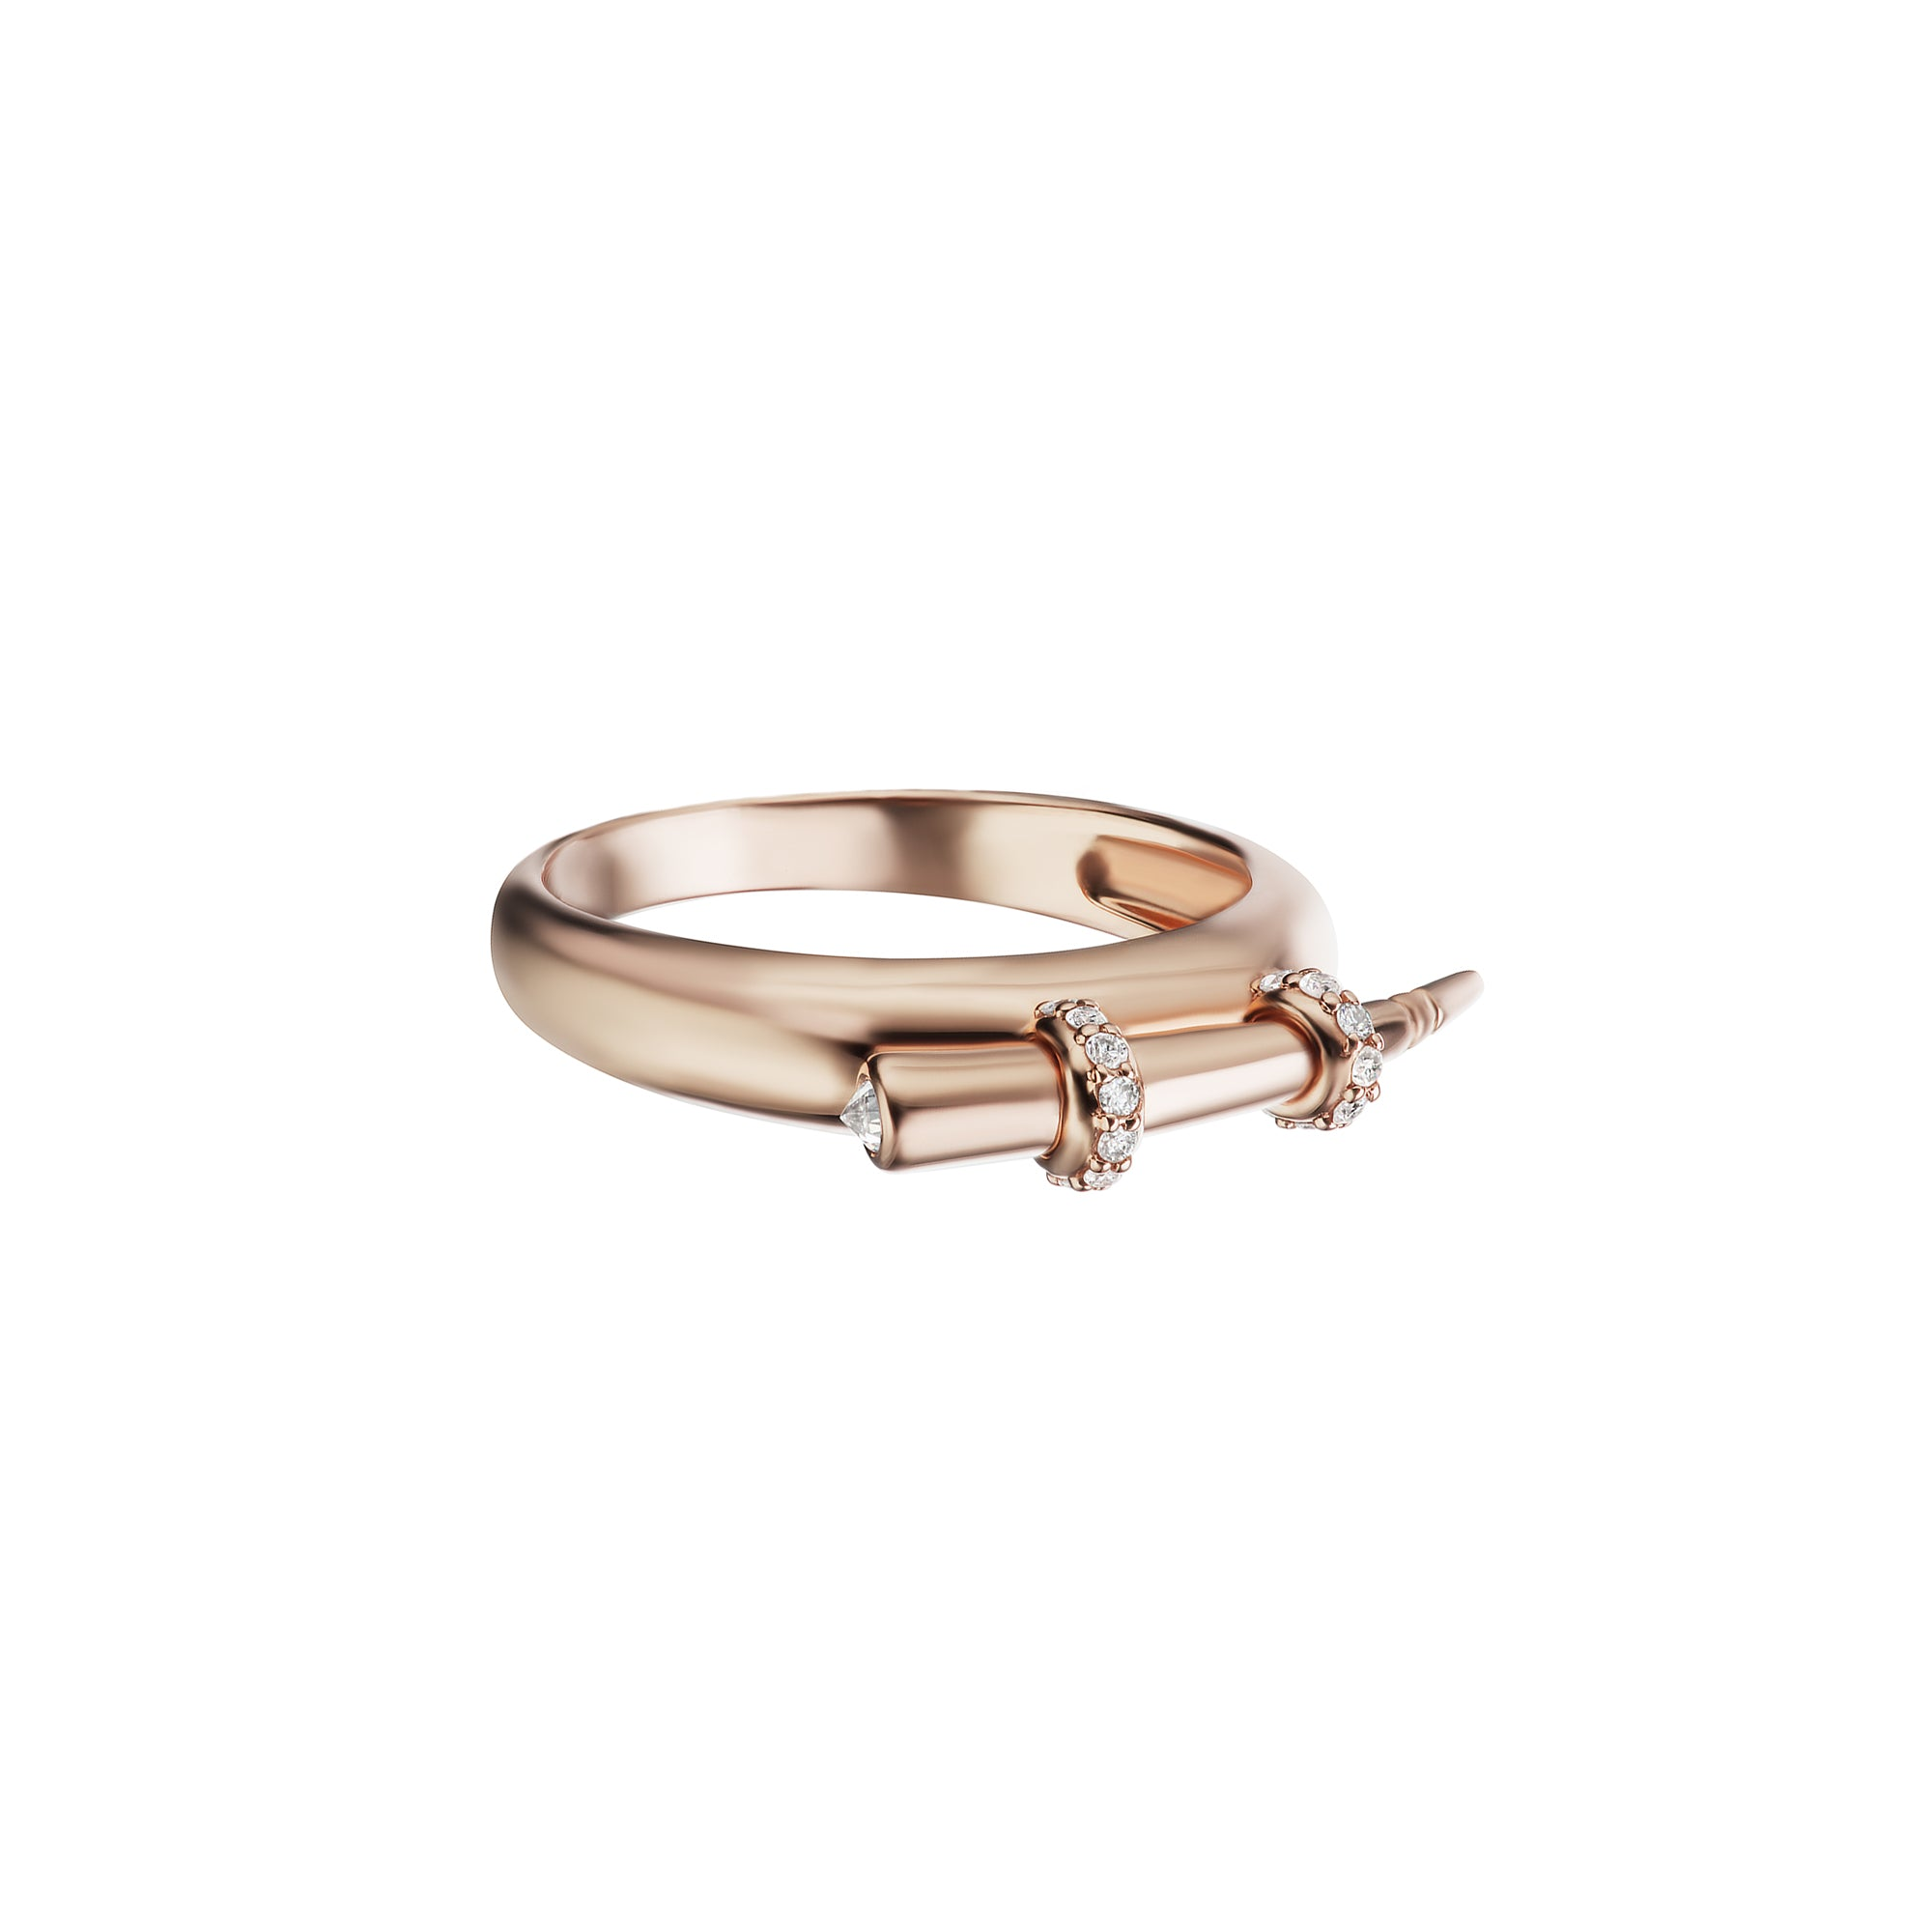 Altruist Hanno Tusk Ring - Rings - Broken English Jewelry